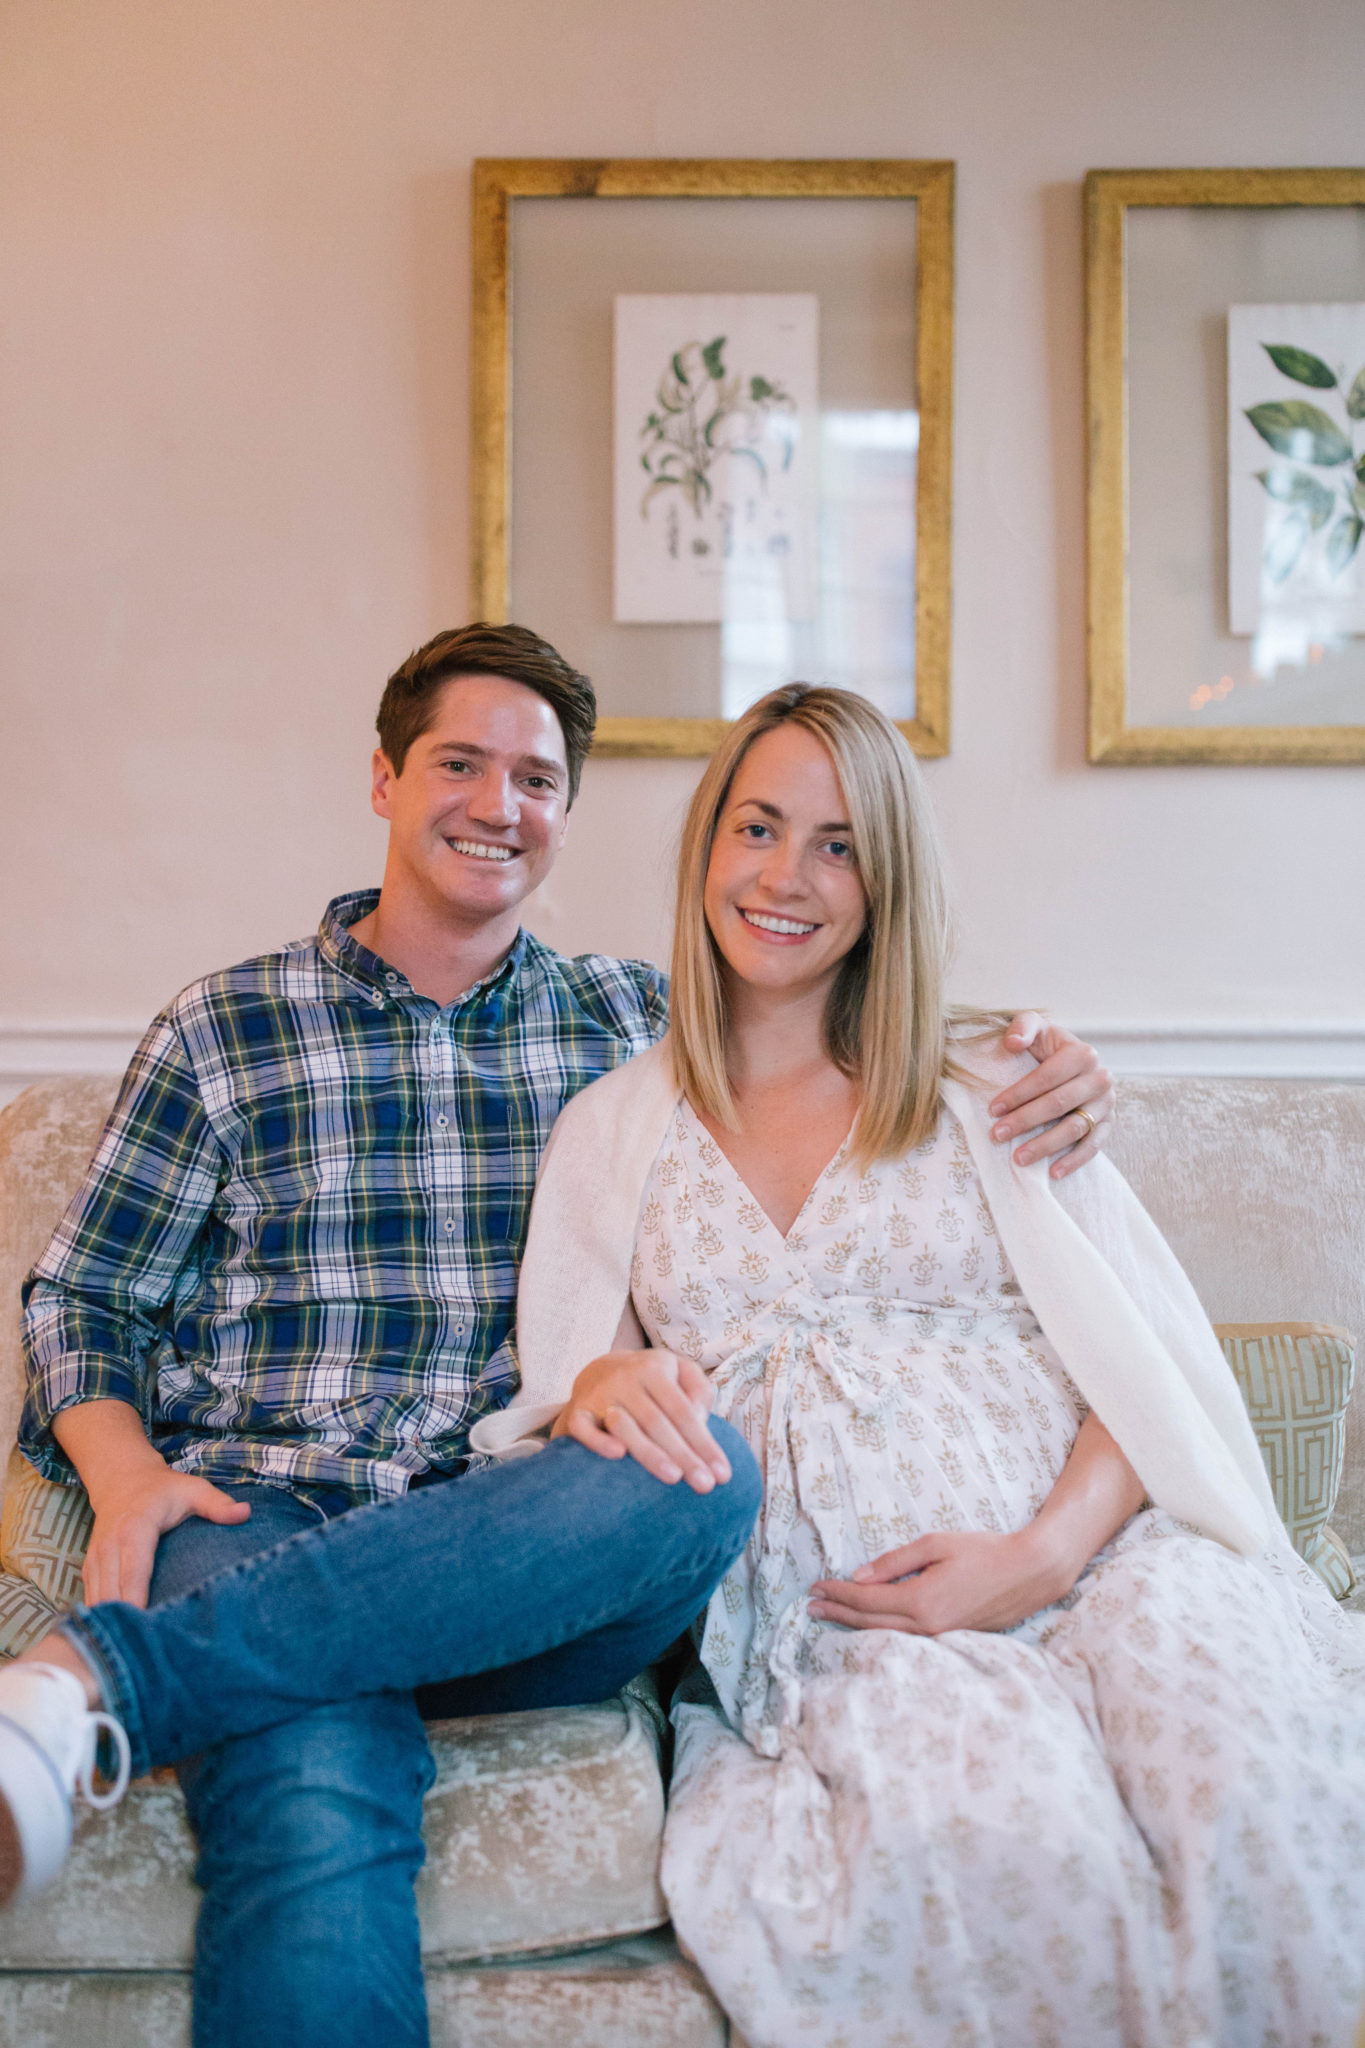 Jillian Eversole shares Third Trimester Outfit Ideas | Rhyme & Reason